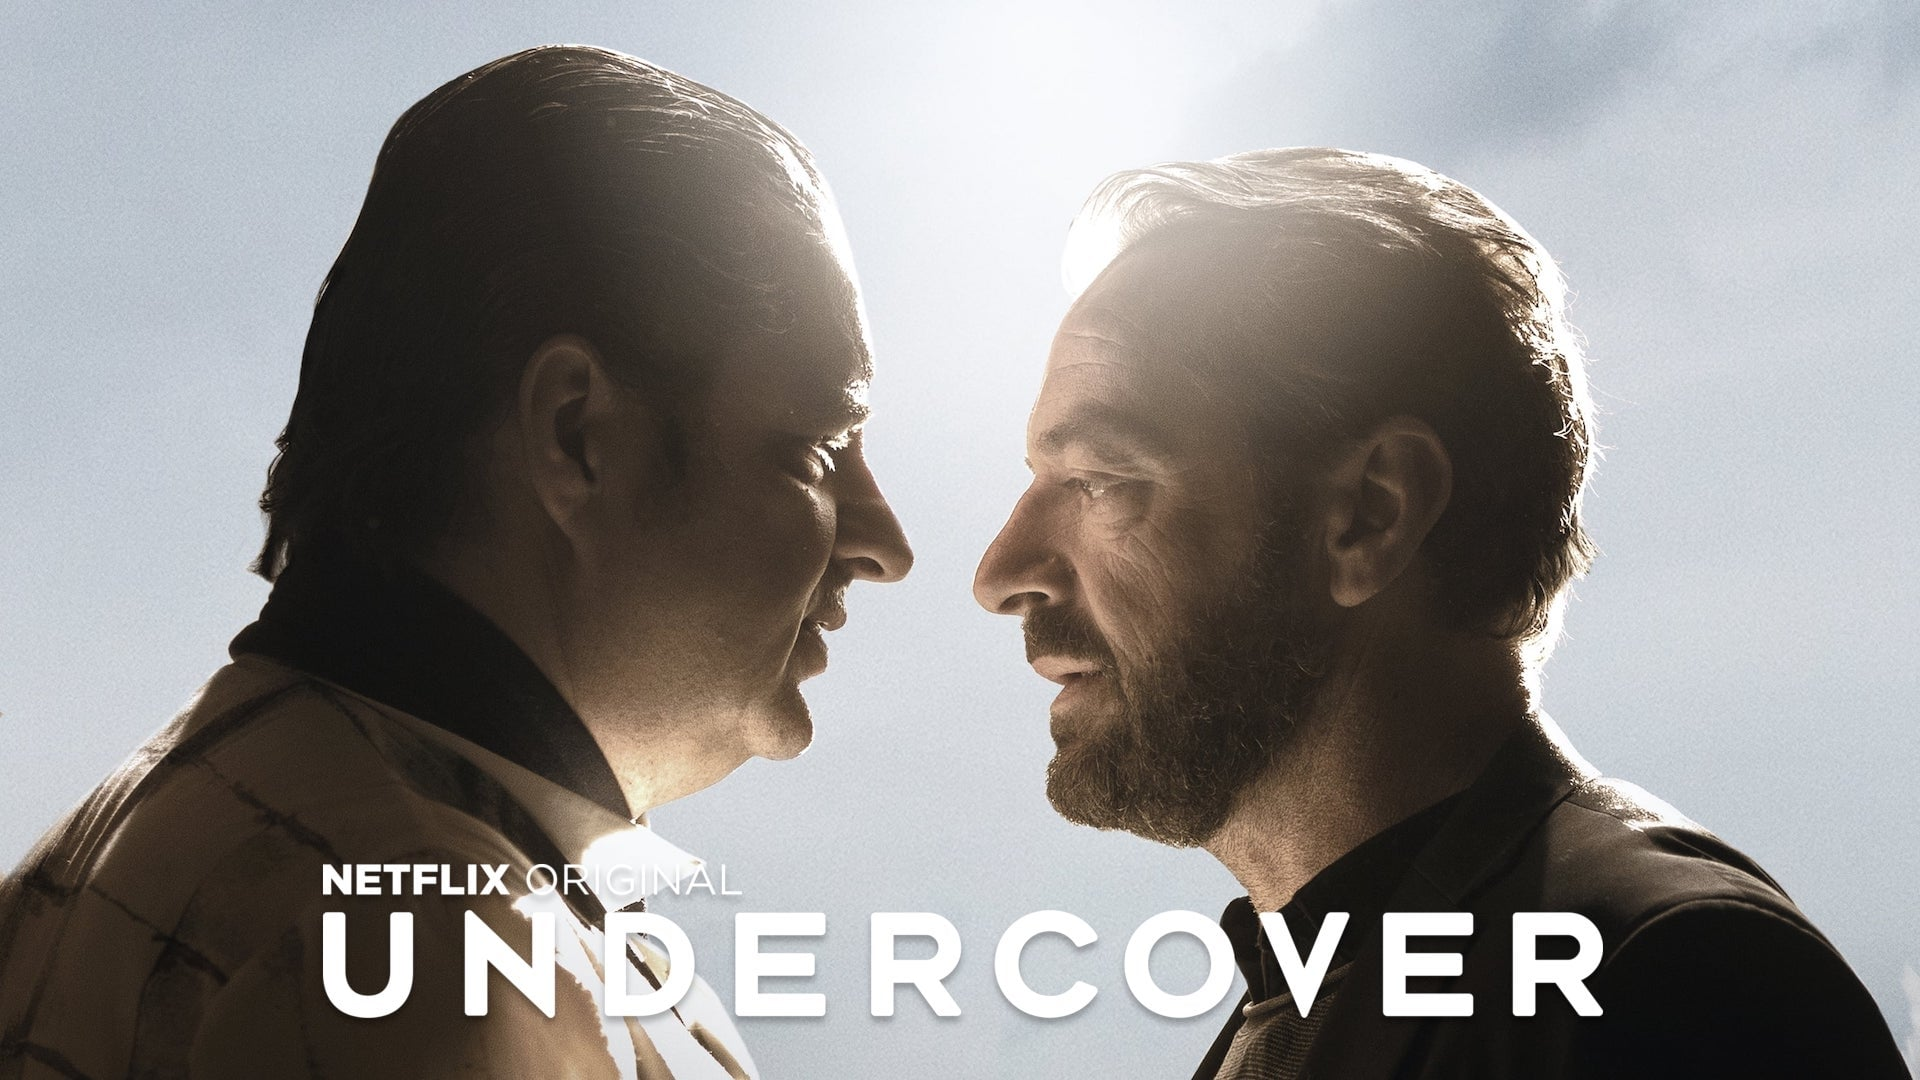 Trailer for second season Undercover, more known about cast Ferry